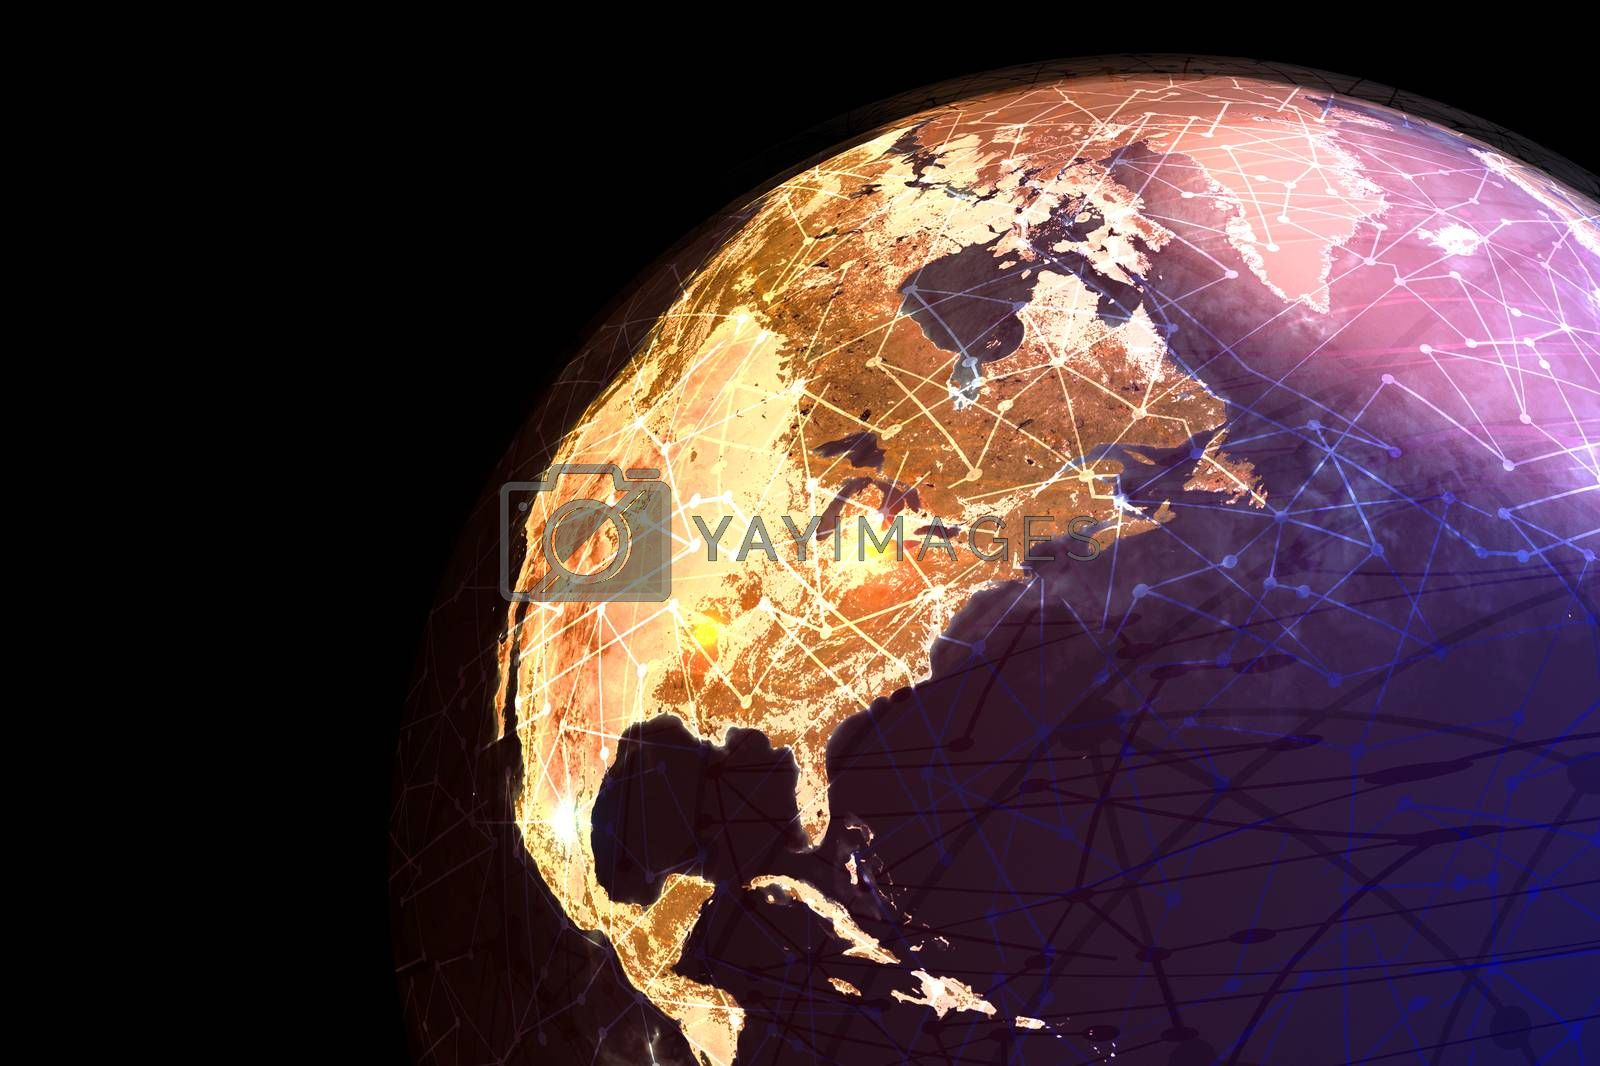 A globe showing global electronic communications and nodes.